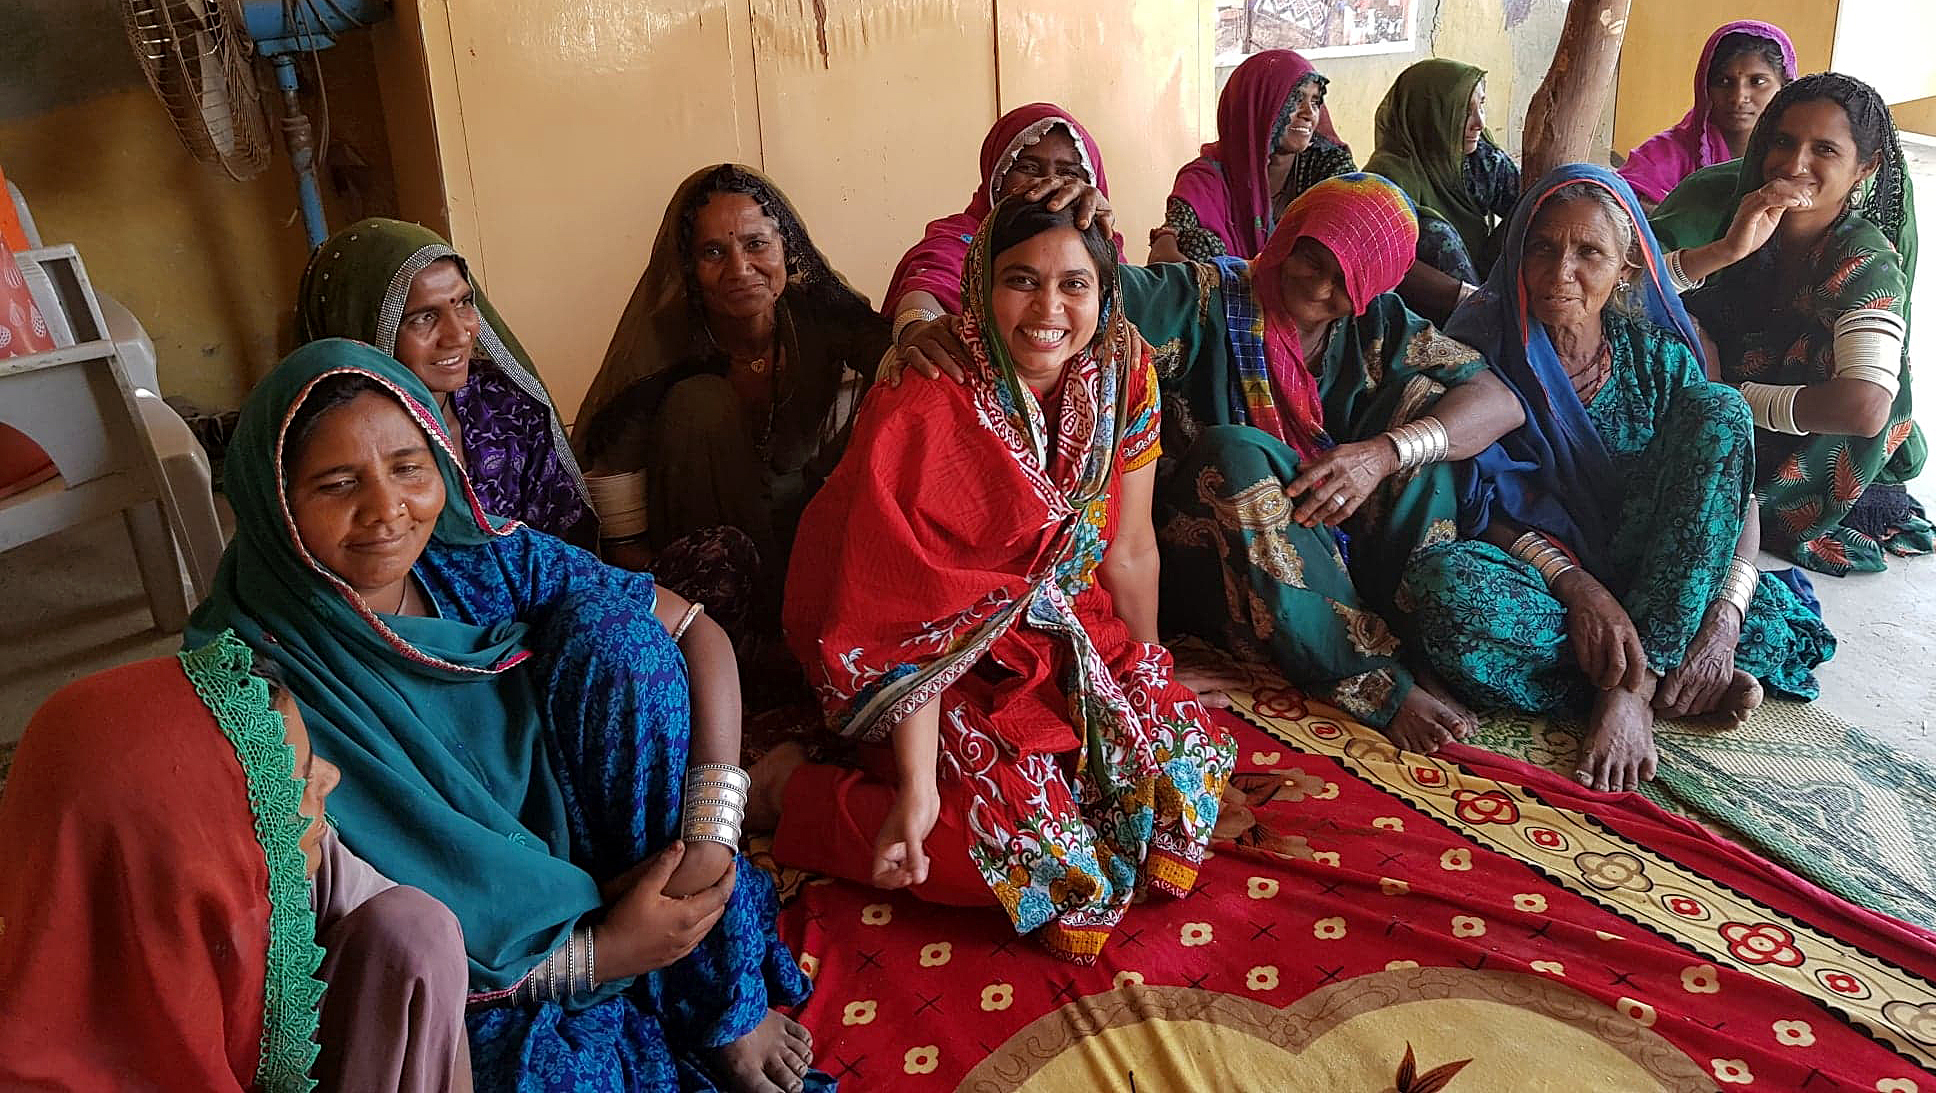 A group of happy women sit together.